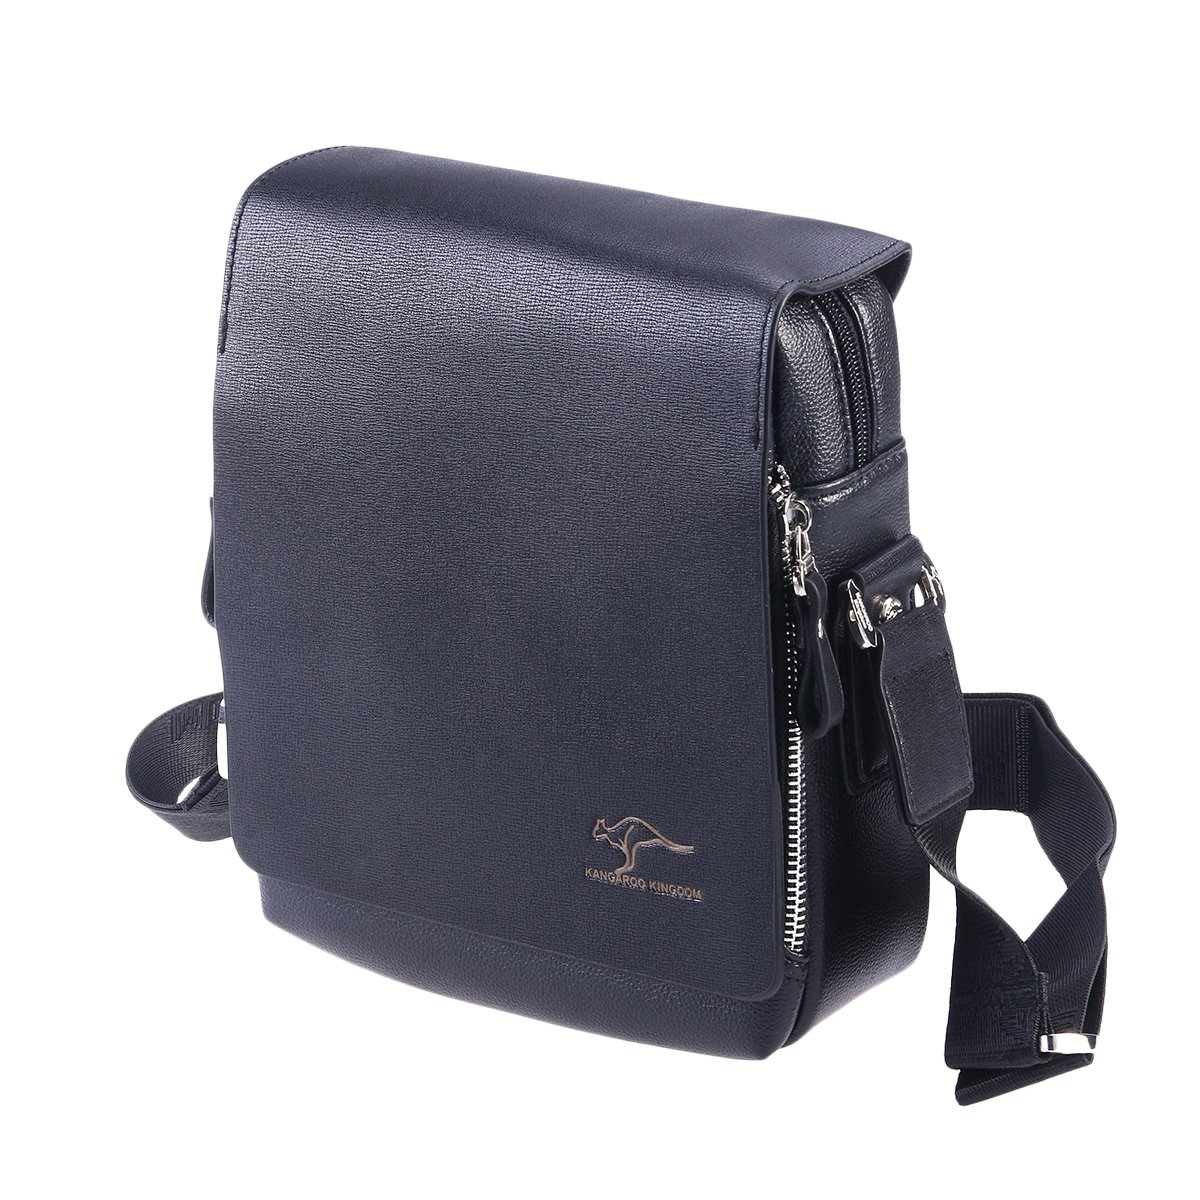 919b7ad5c833 Men's Vertical PU Shoulder Bag Messenger Bag gifts for men - Size M ...